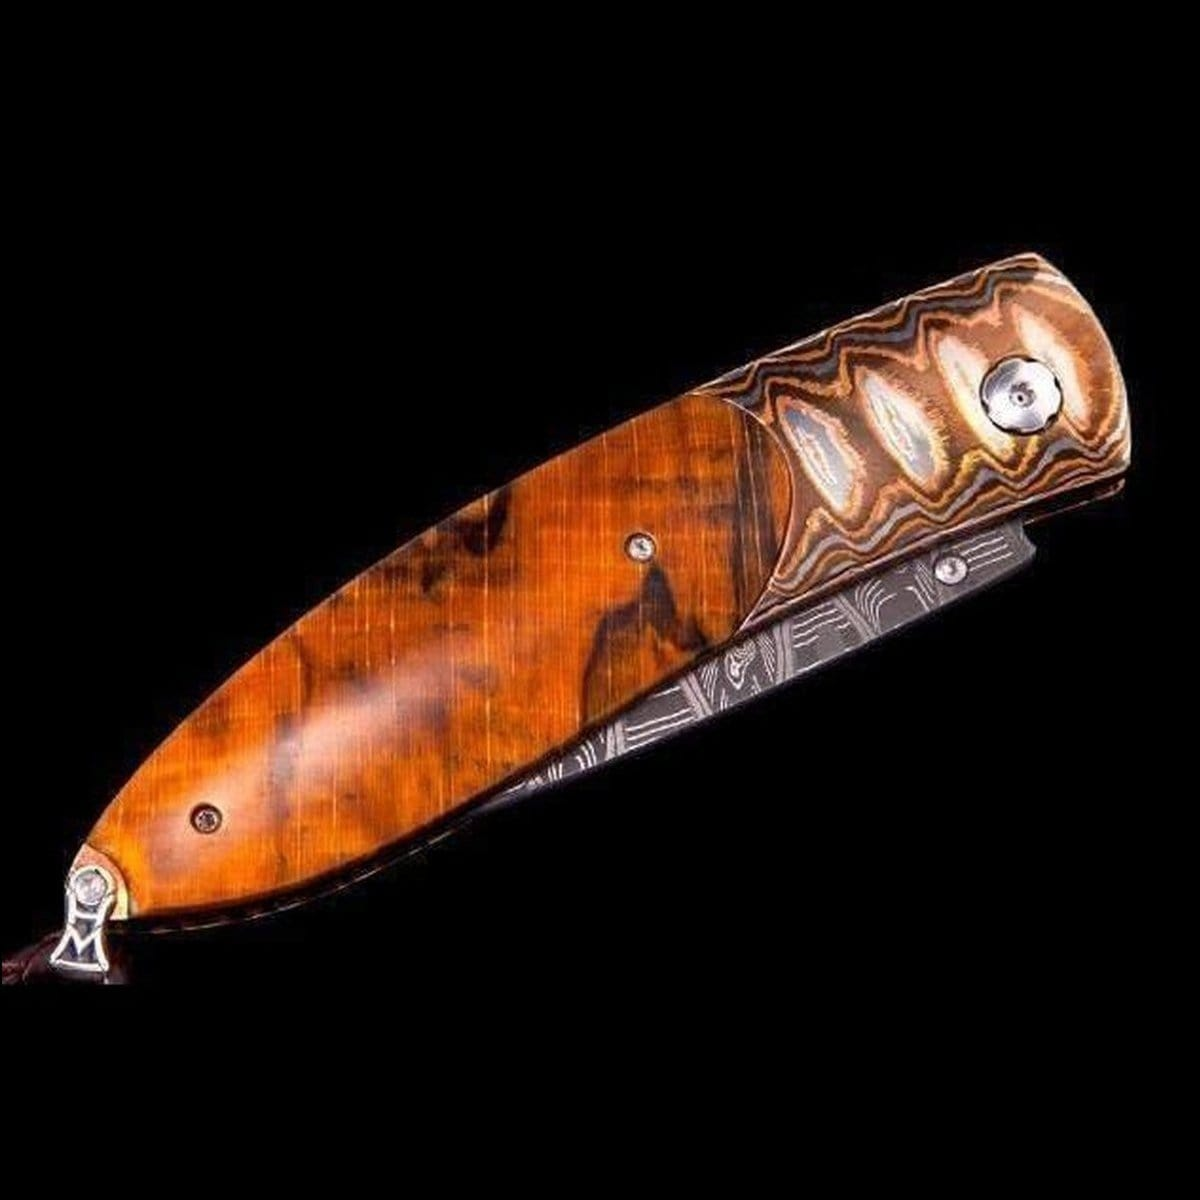 Monarch Autumn Limited Edition Knife - B05 Autumn-William Henry-Renee Taylor Gallery